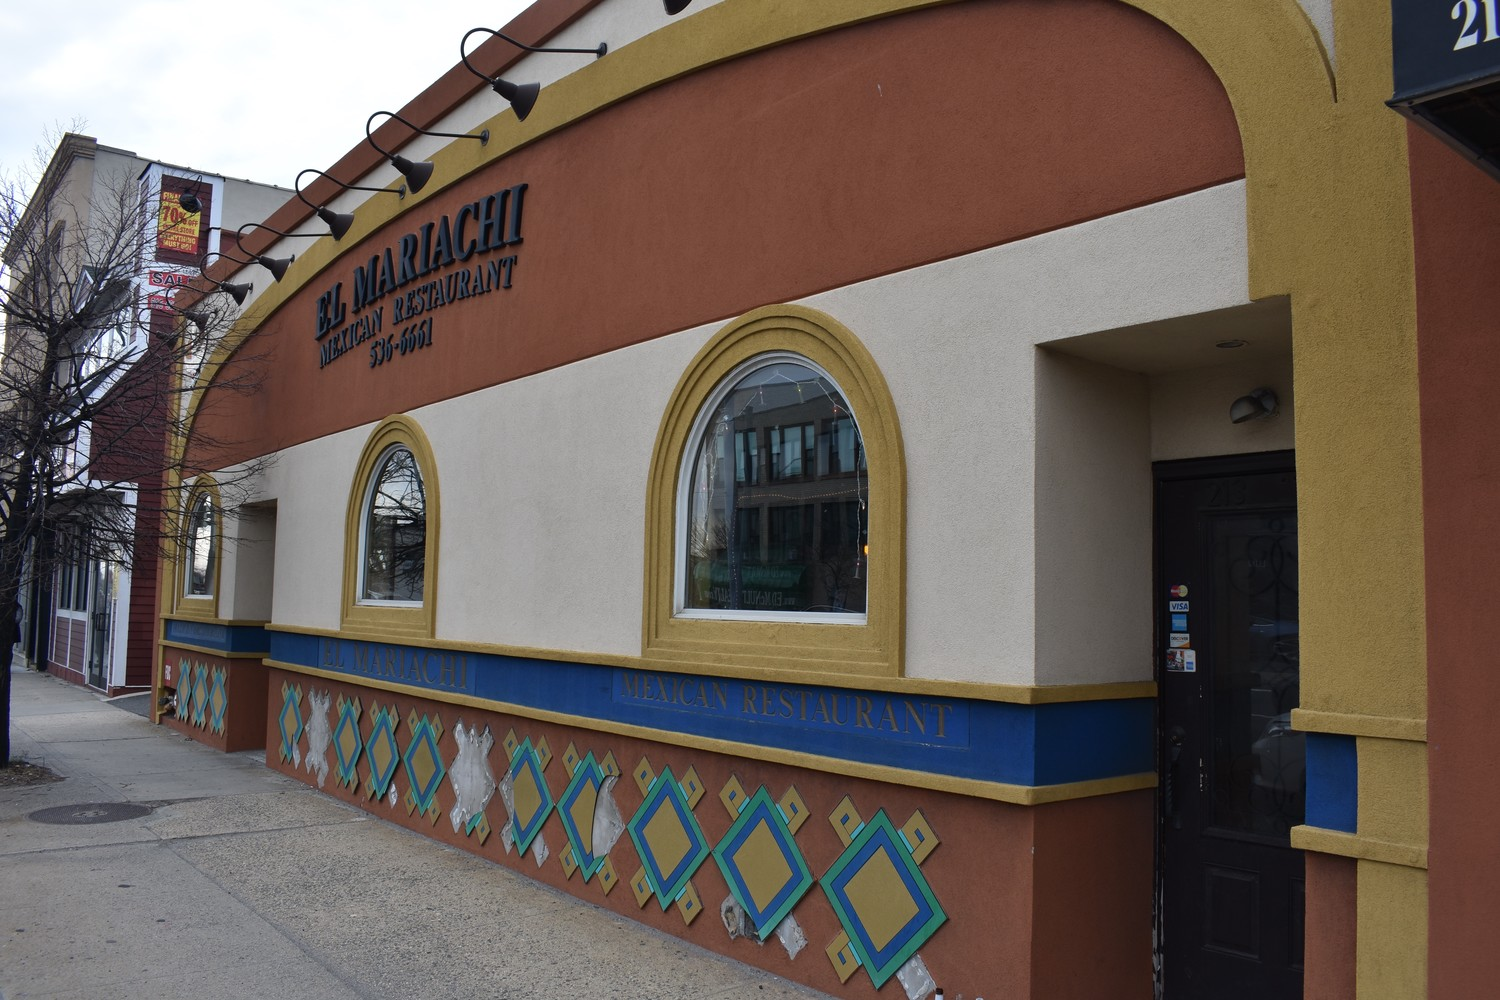 El Mariachi, which has occupied a spot on Sunrise Highway for 41 years, will close its doors this weekend after losing its lease.